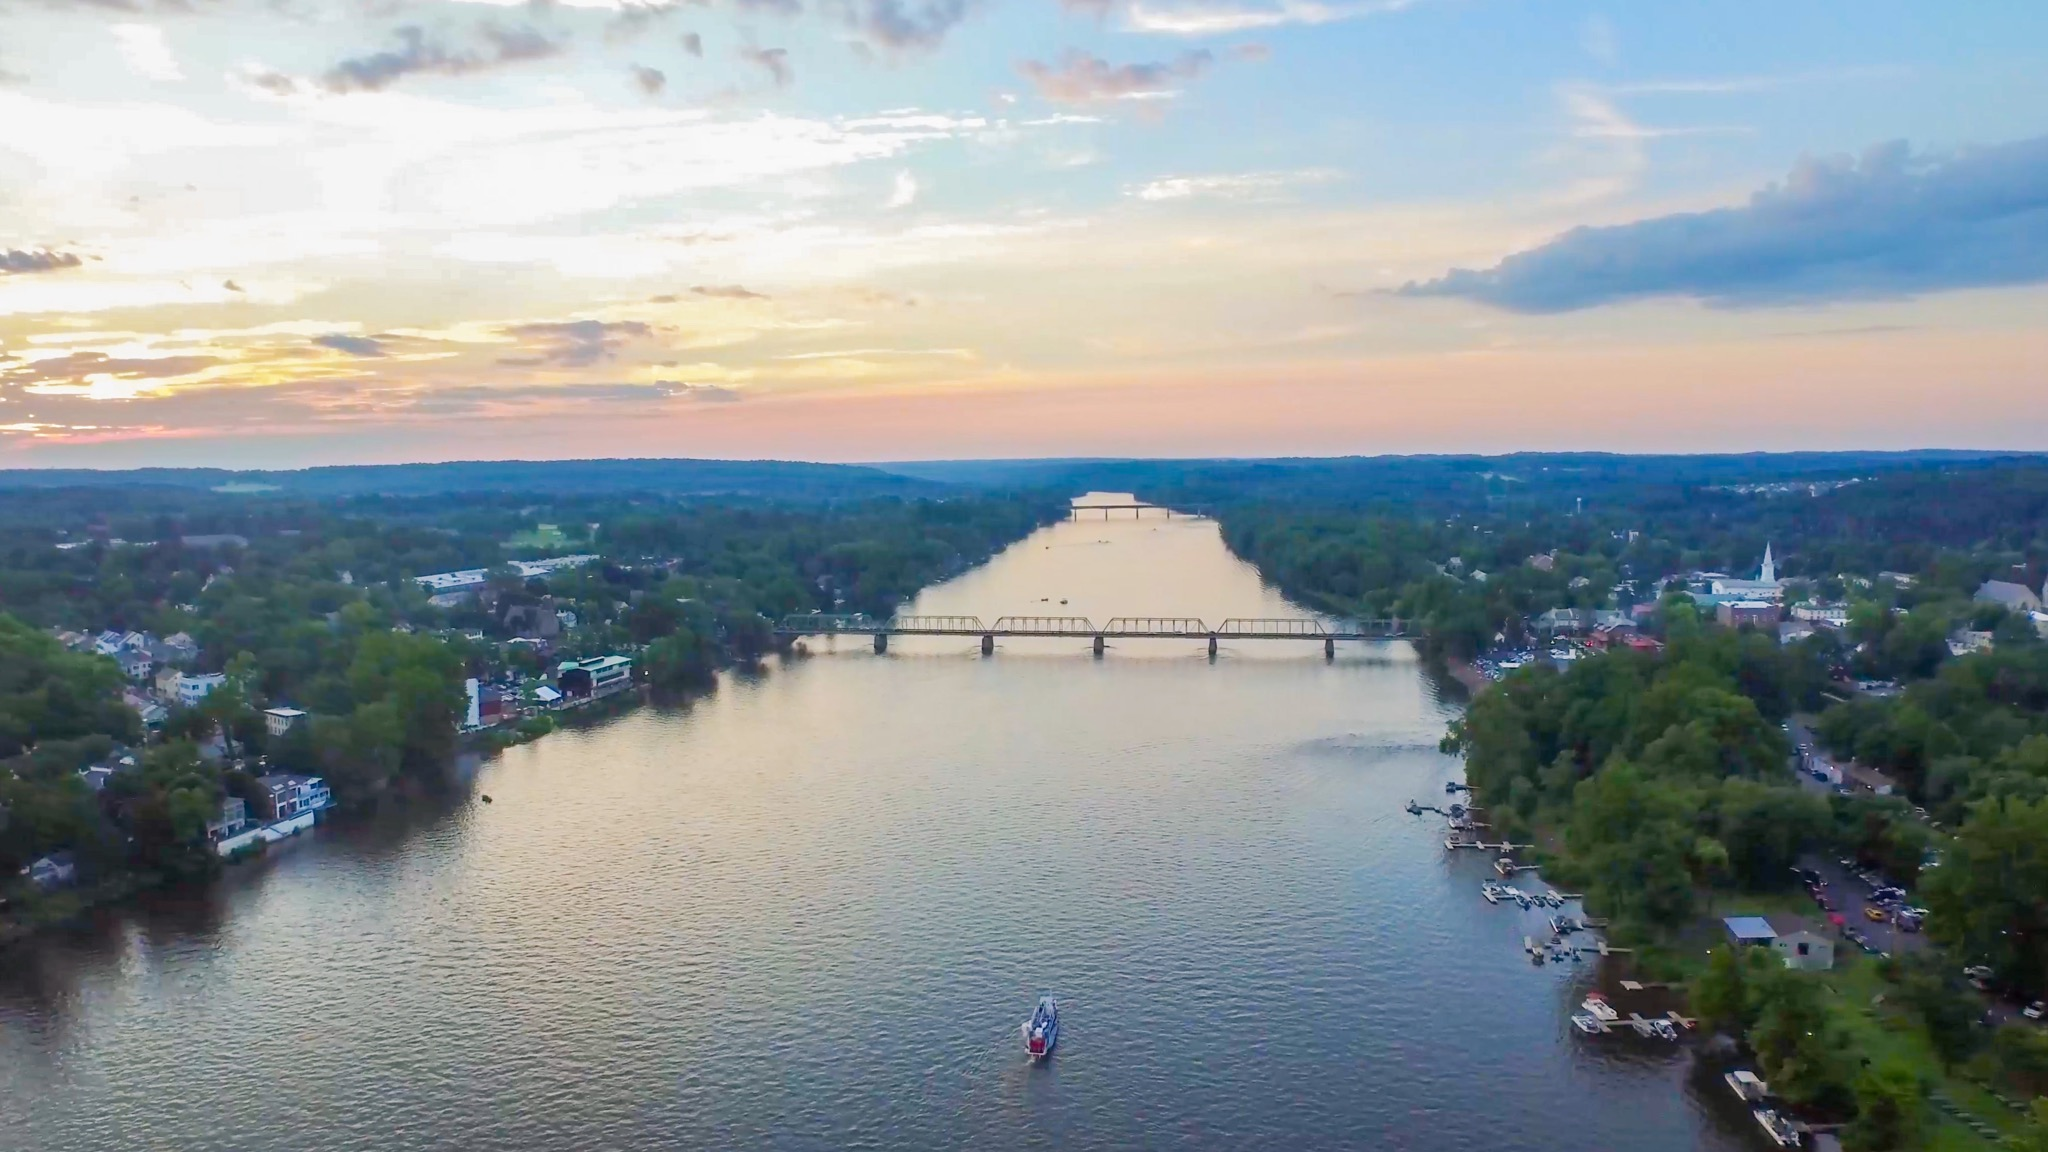 Delaware River Towns, Lambertville, New Hope, Bucks and Hunterdon